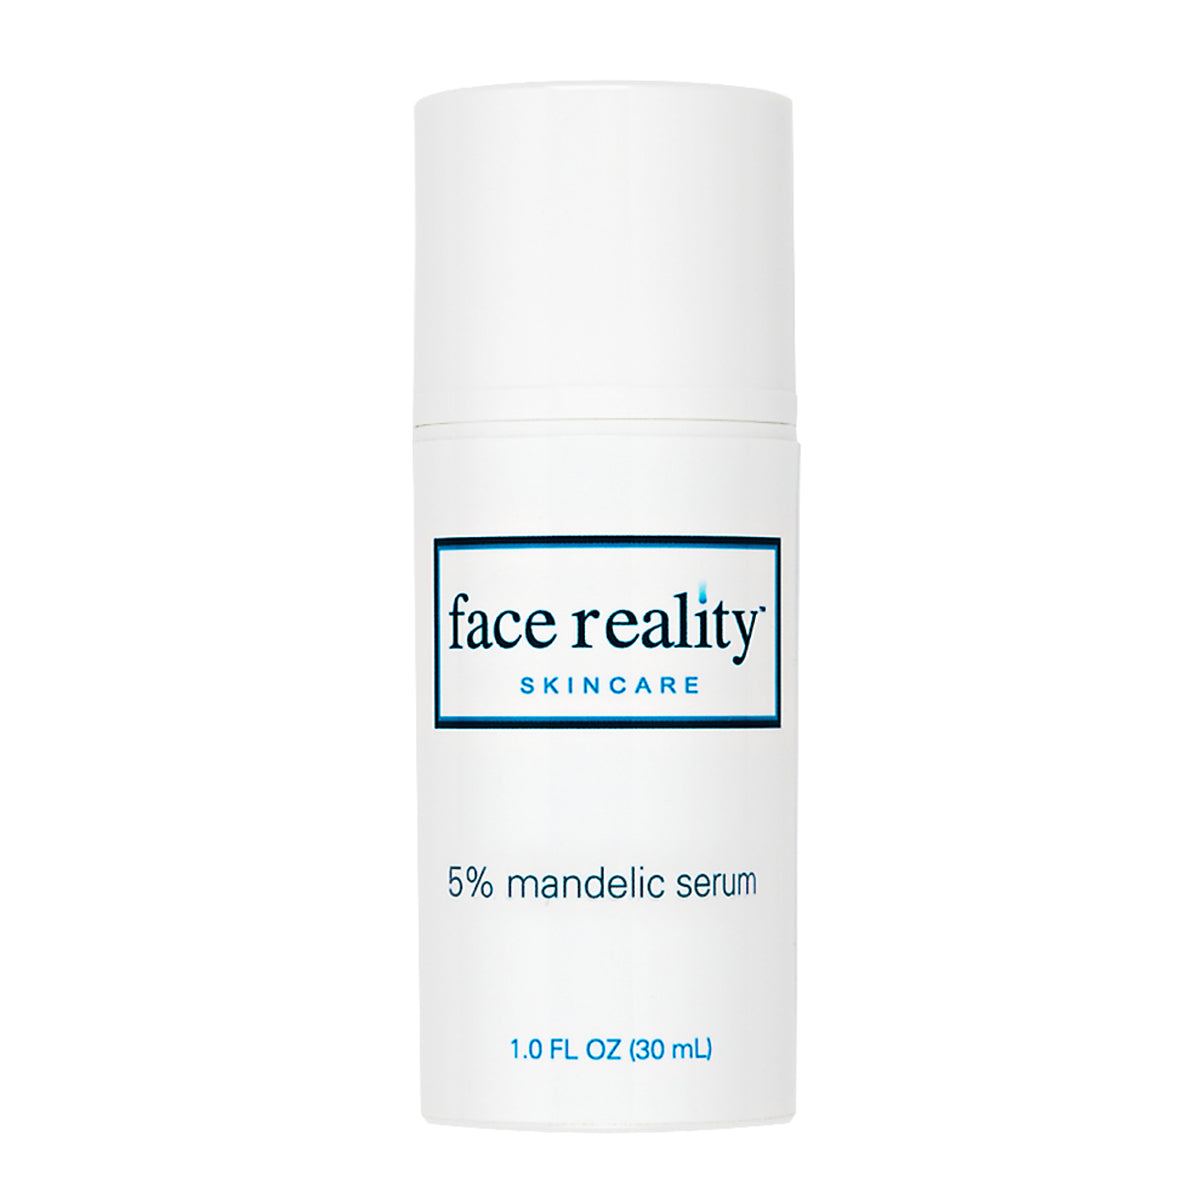 FACE REALITY - Mandelic Serum 5% - Beauty Nook